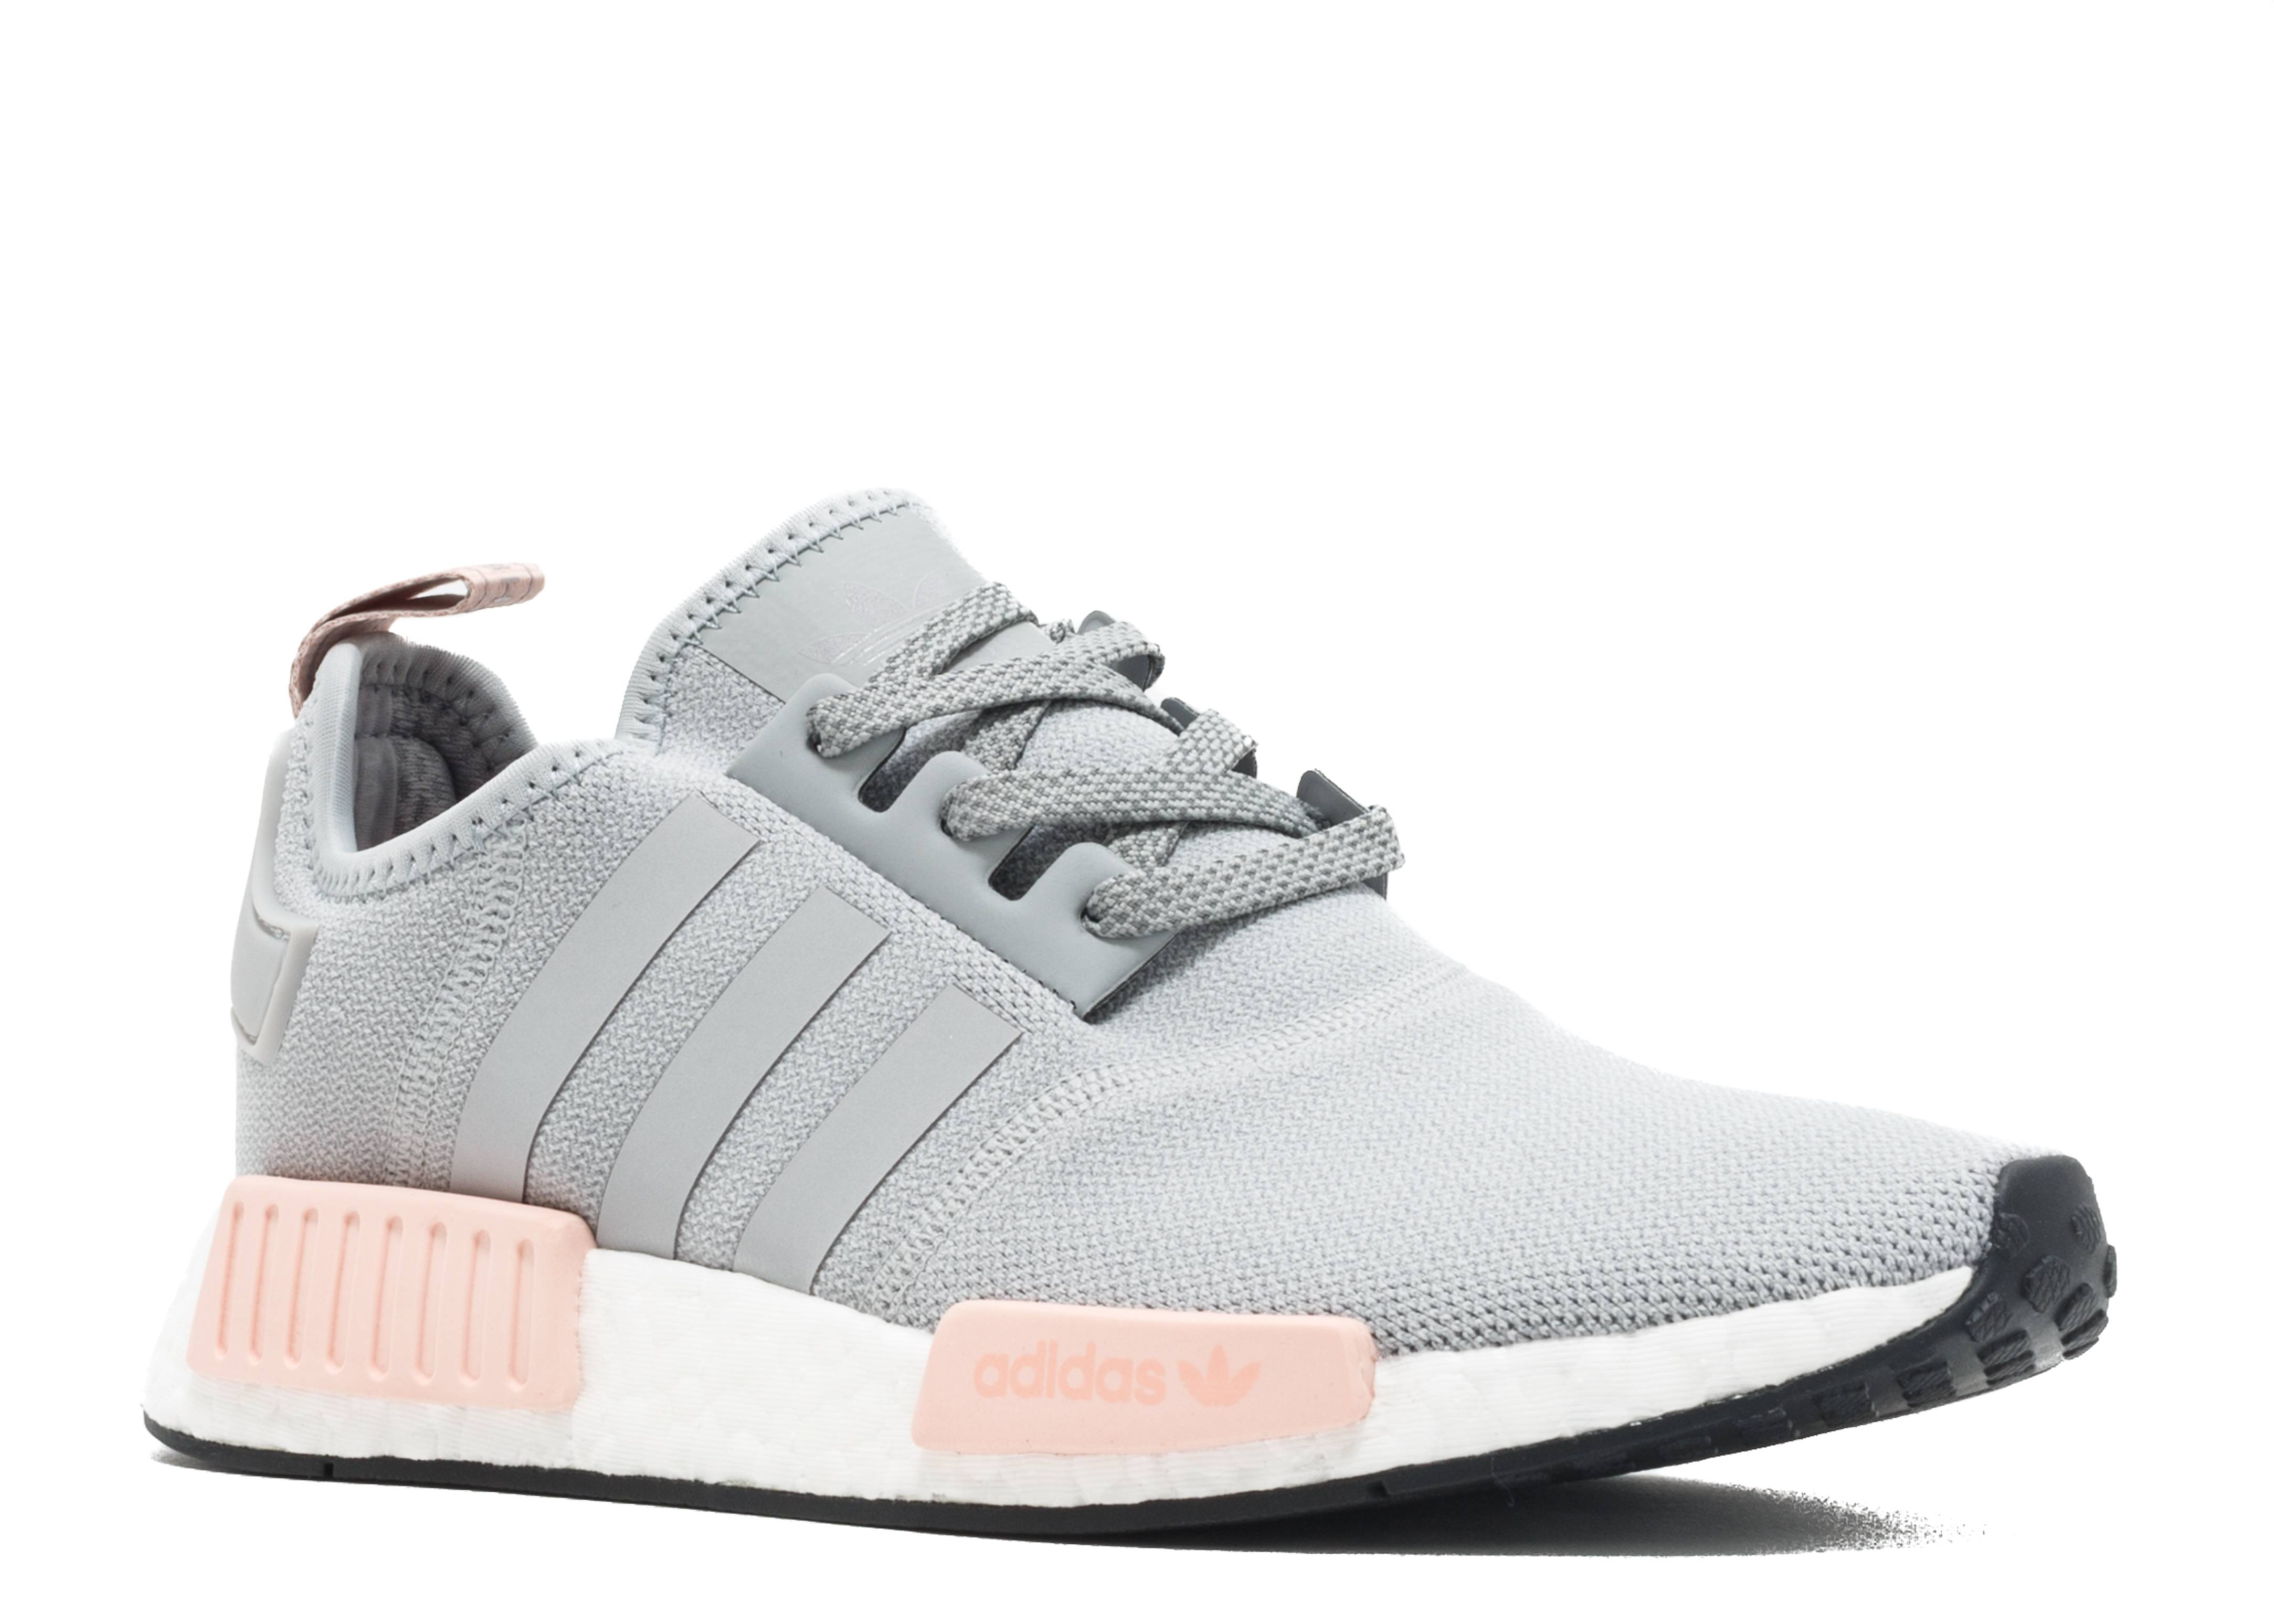 Nmd R1 W Adidas By3058 Clear Onix Light Onix Vapour